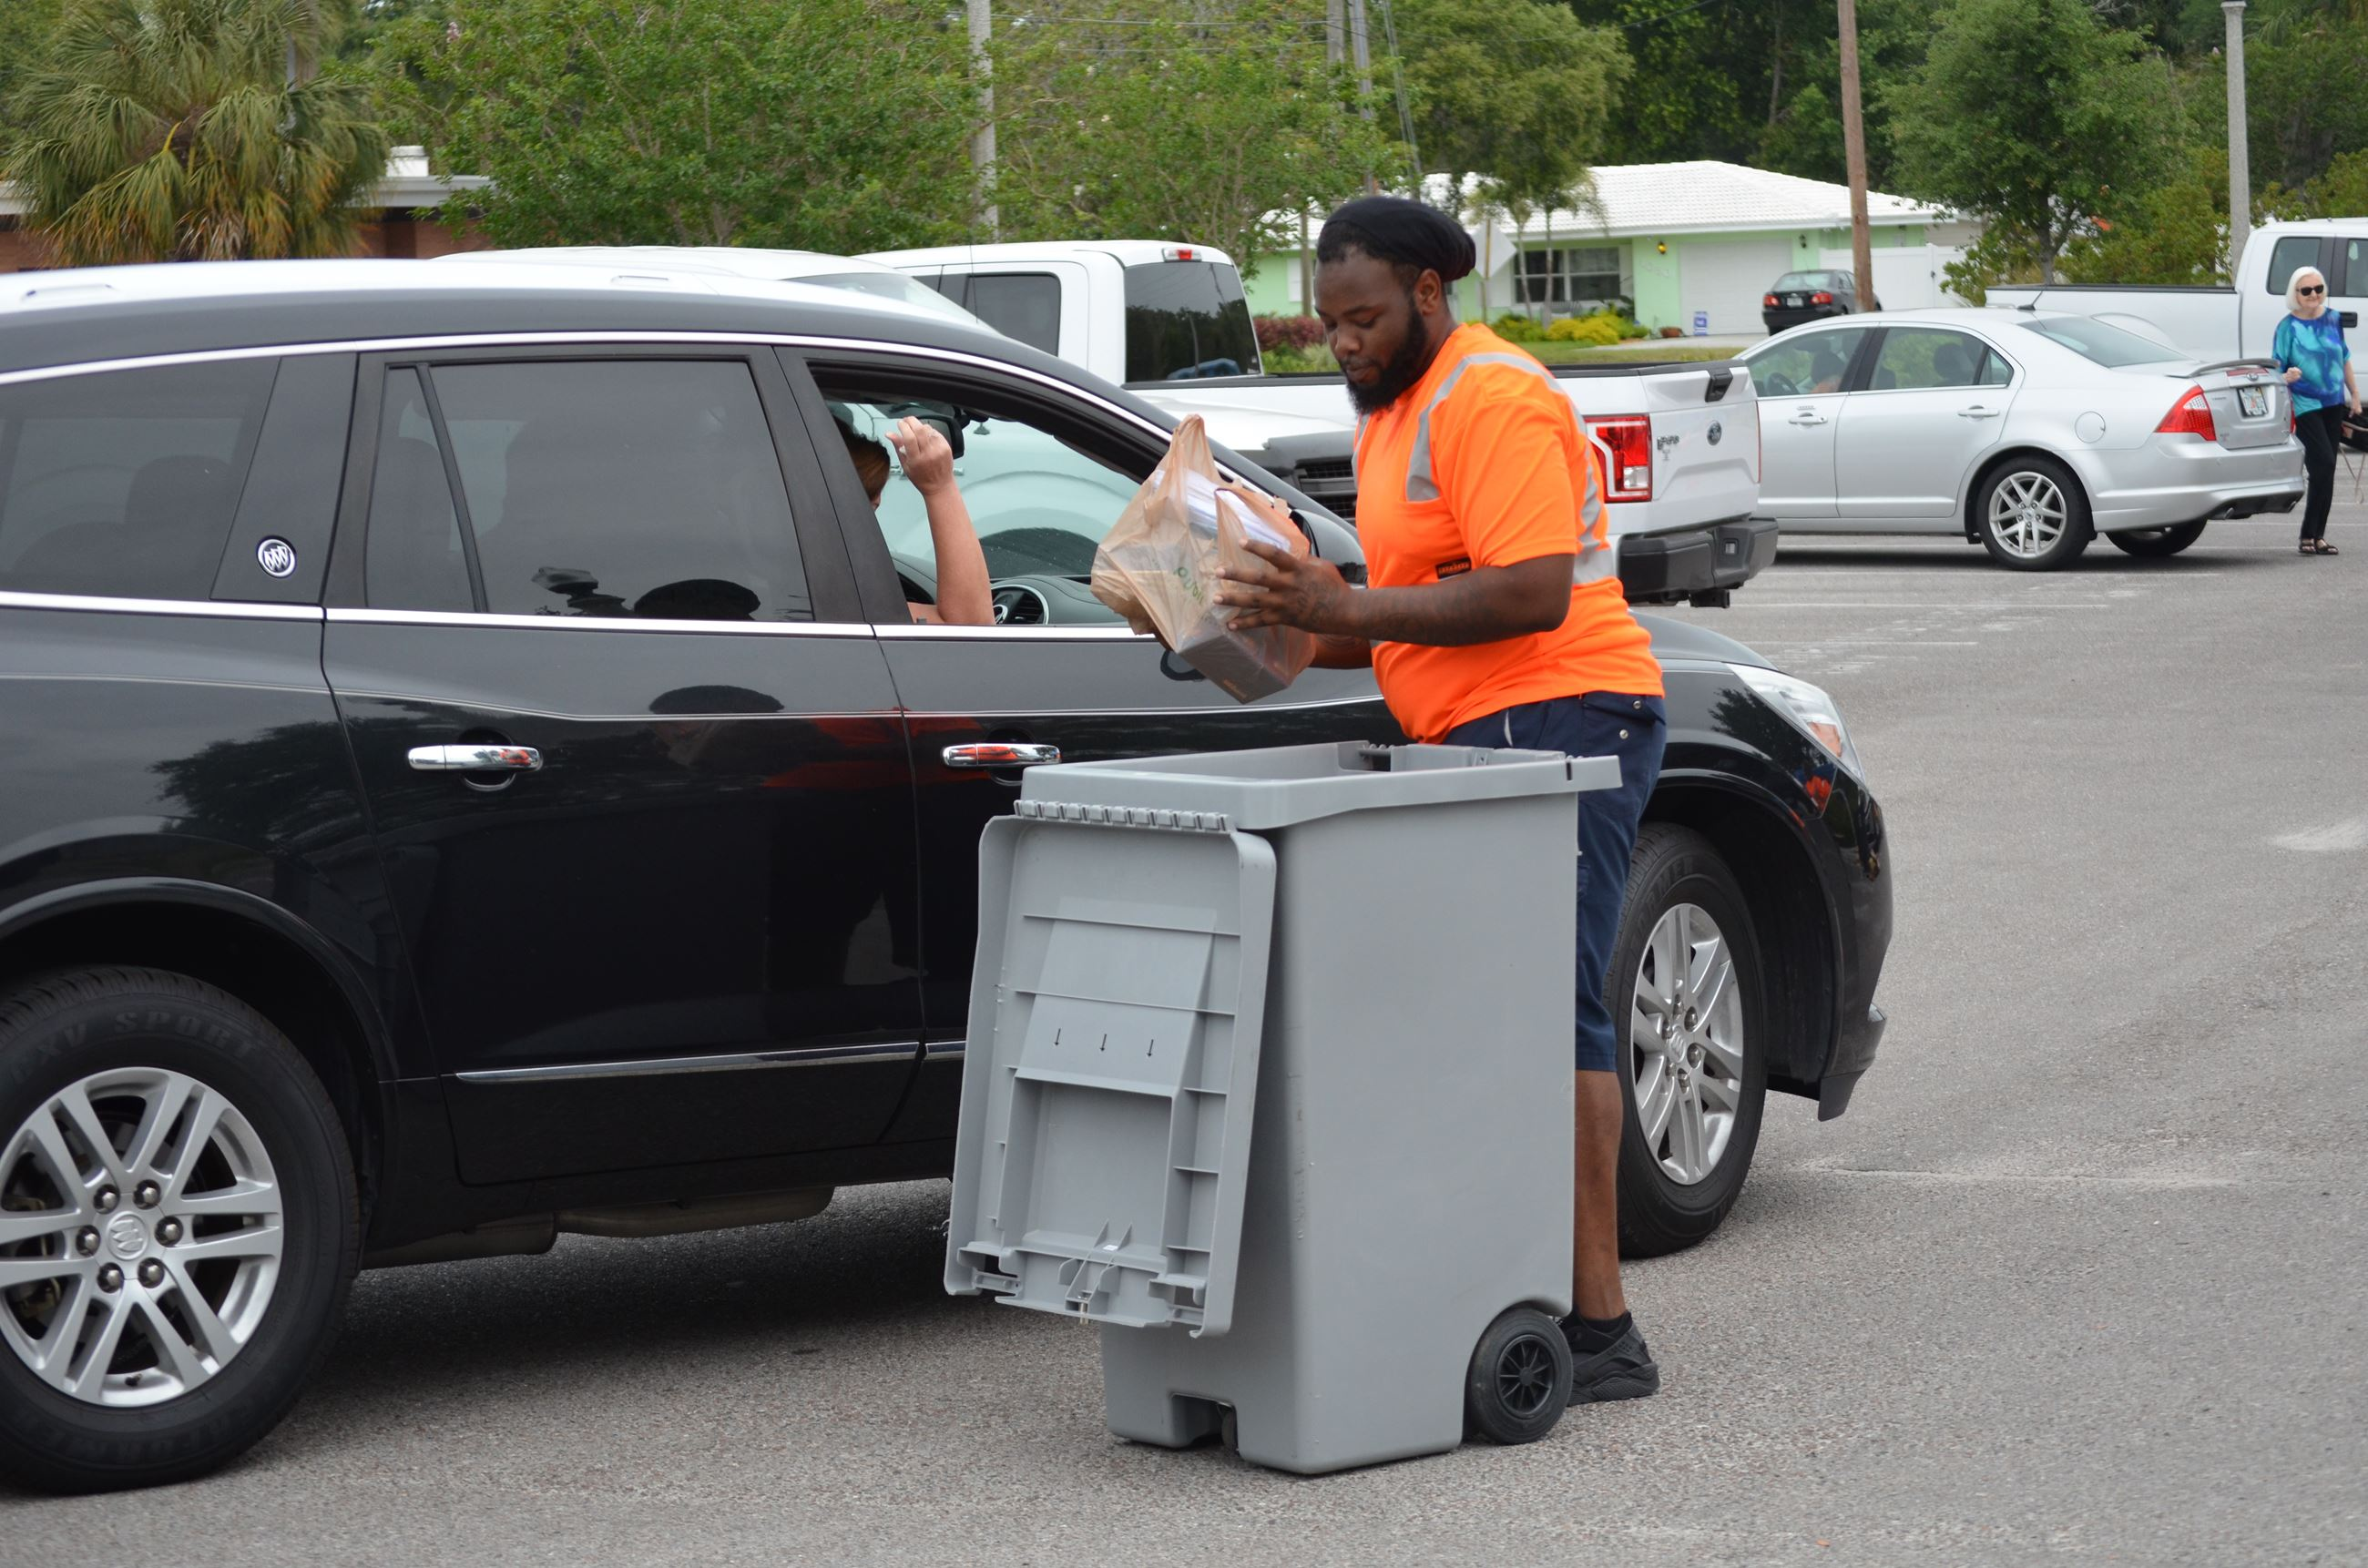 Image of staff collecting papers from a car at a previous shredding event.